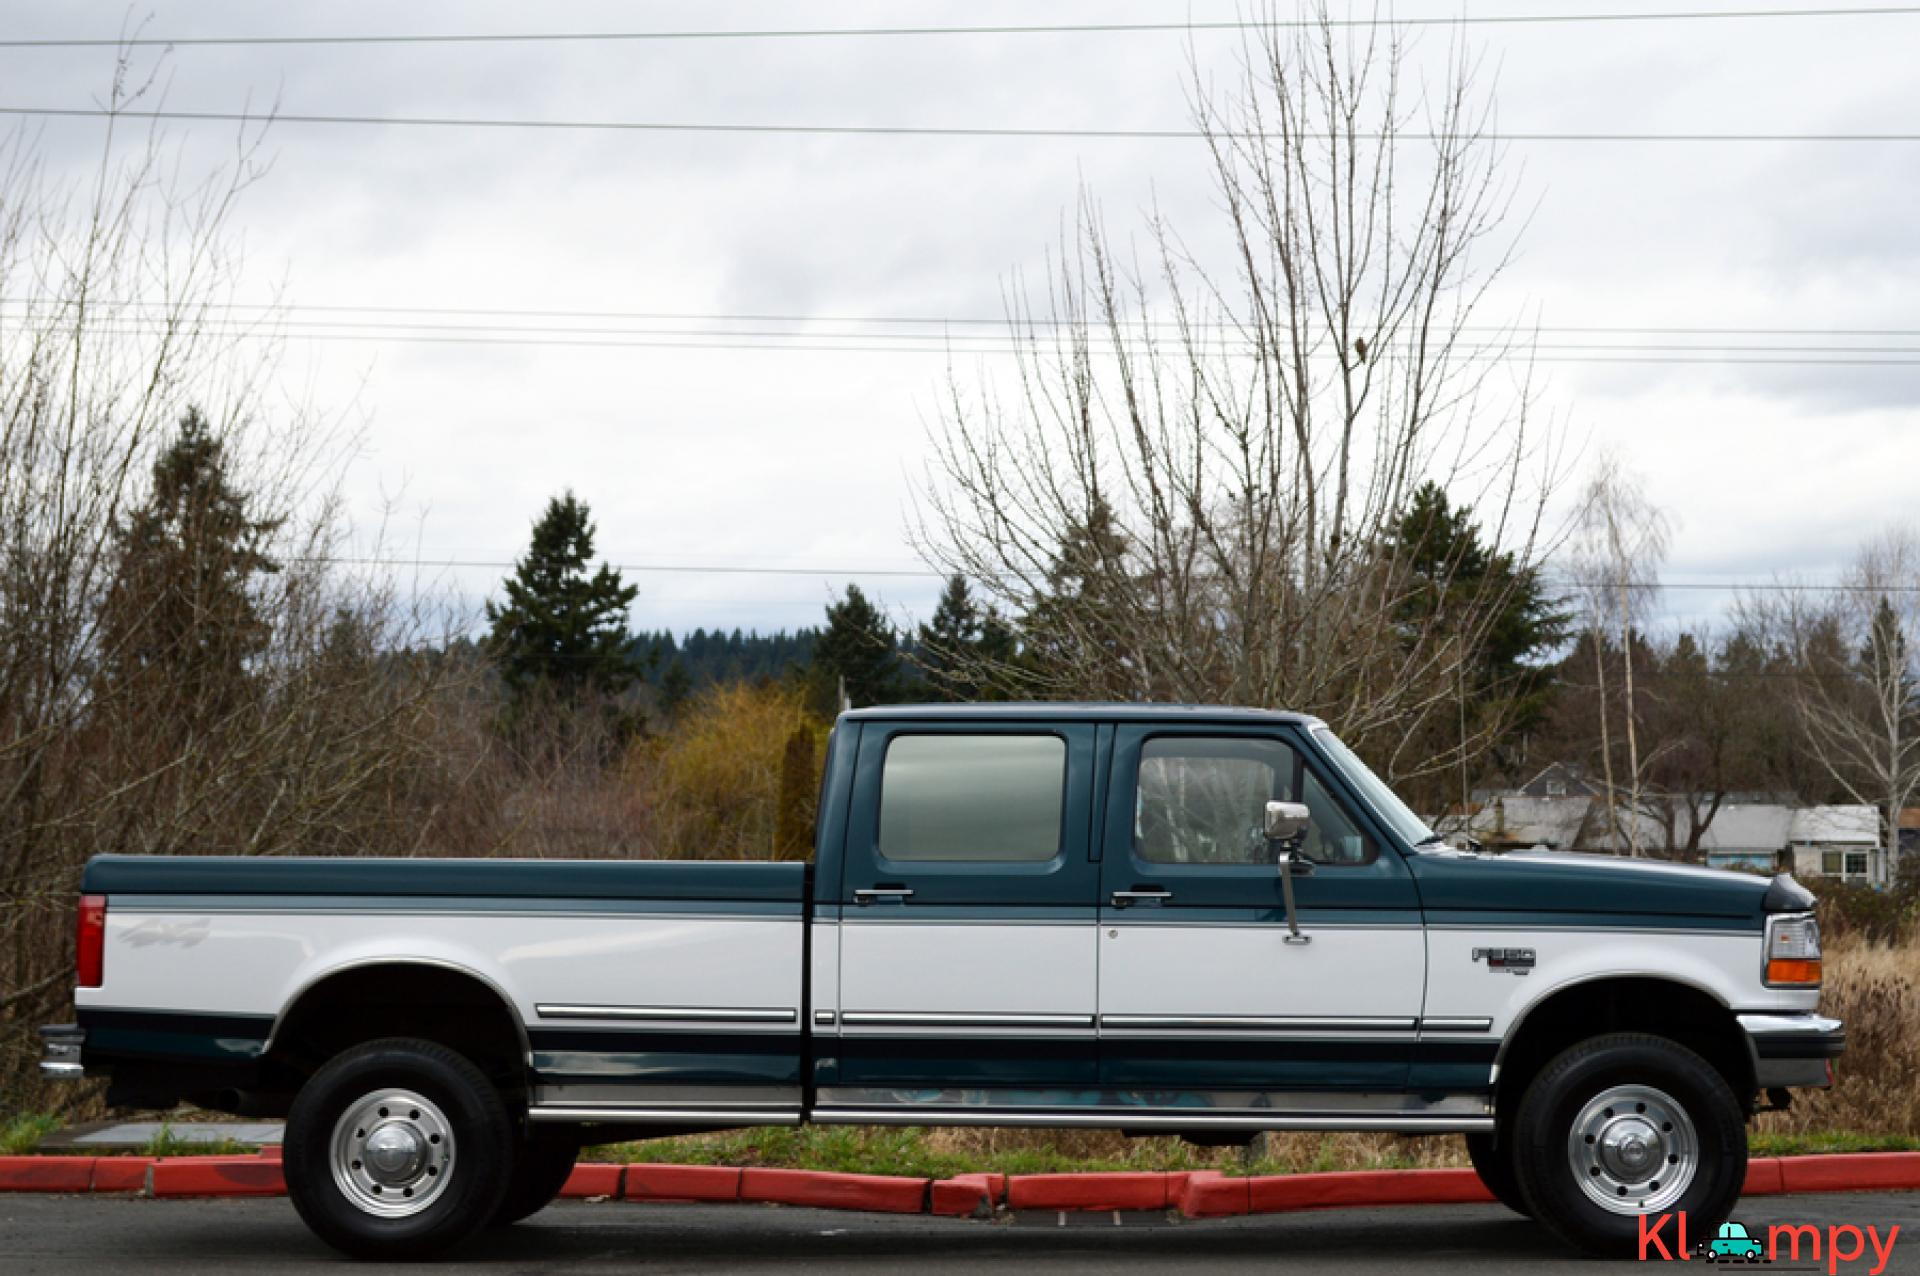 1997 FORD F-350 CREW CAB LONG BED 4WD 7.3L - 3/20